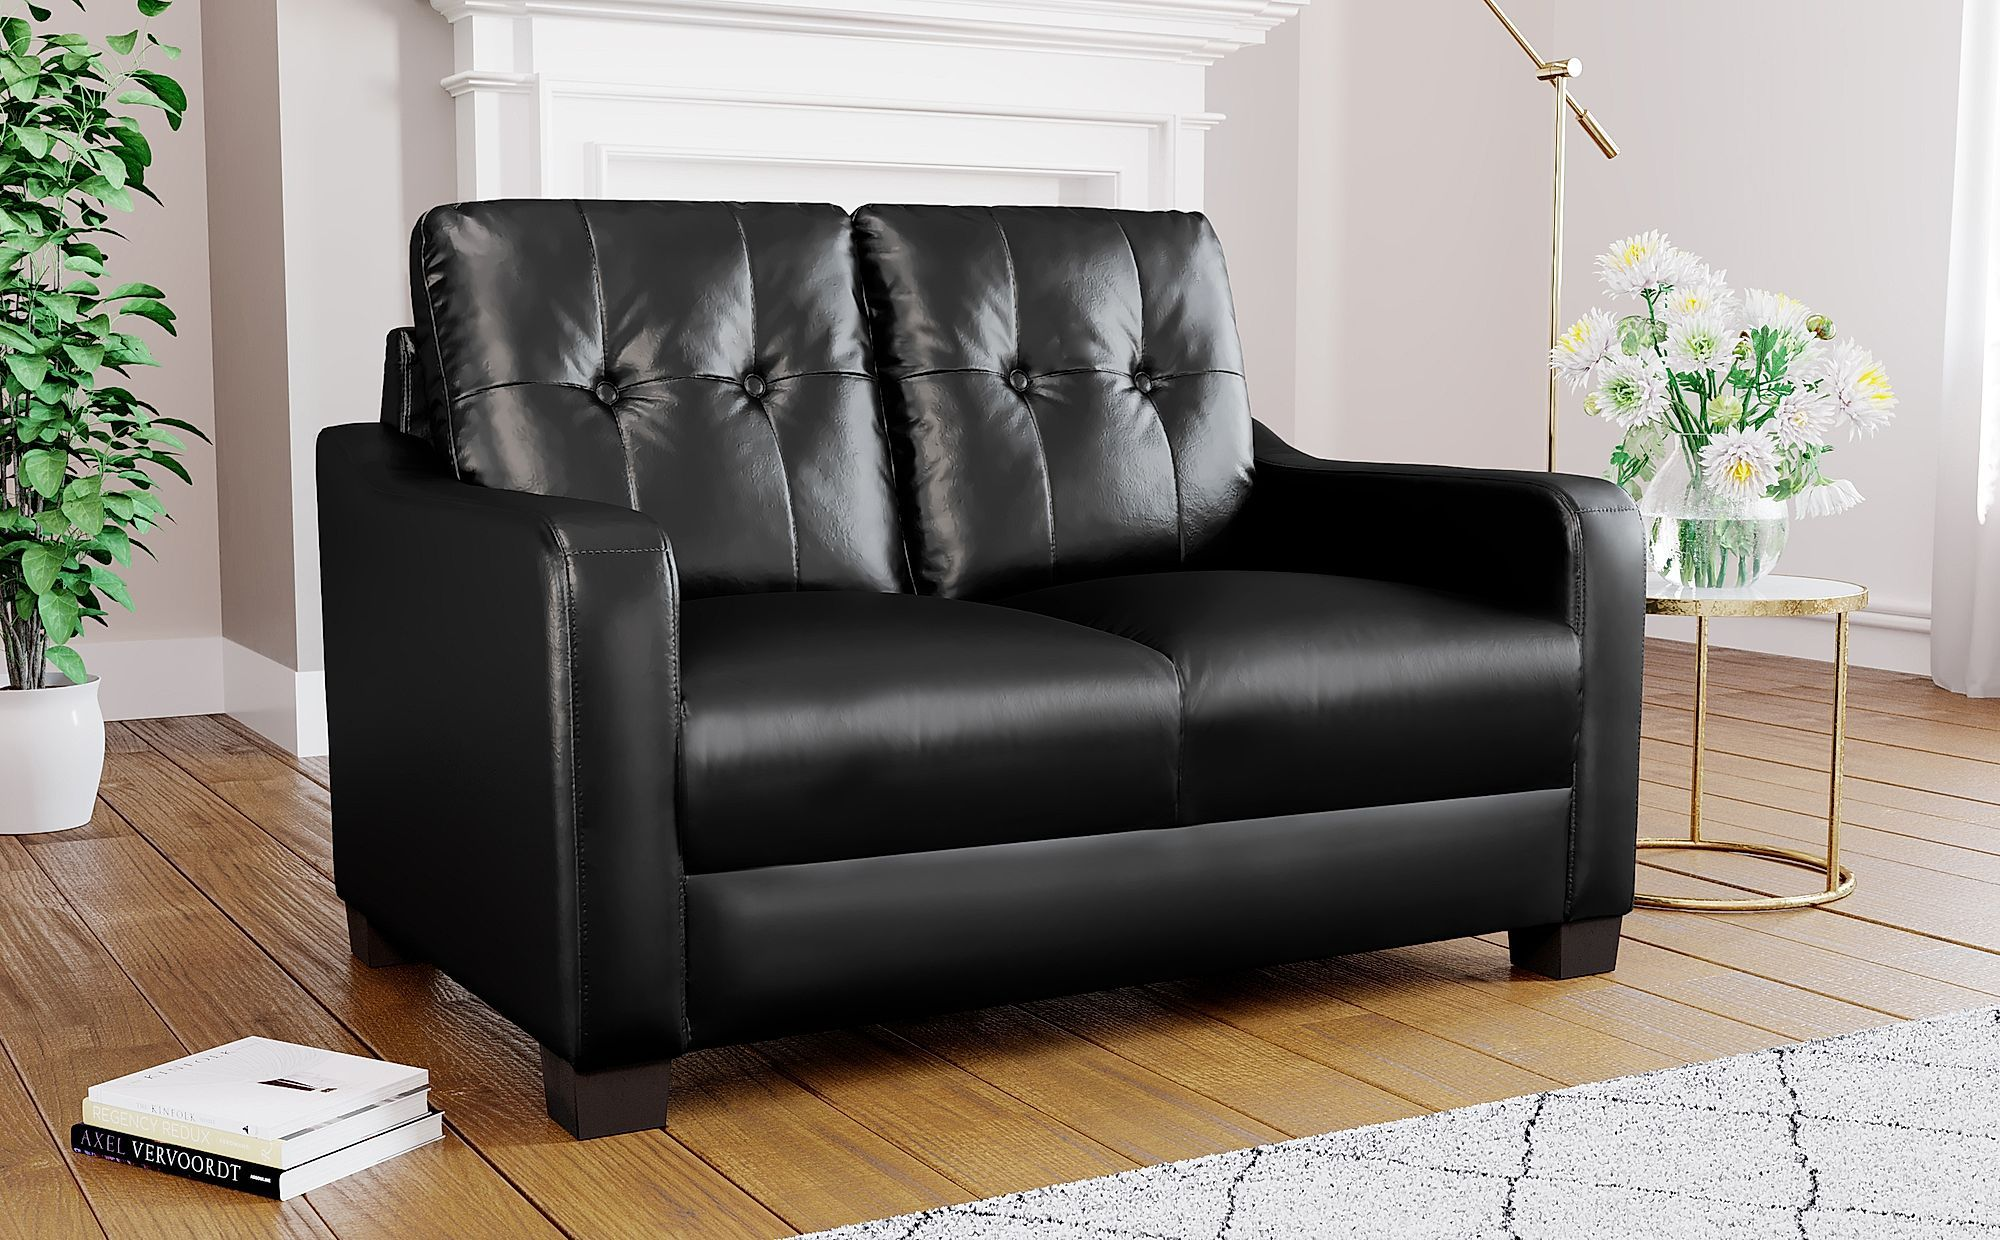 Belmont Black Leather 2 Seater Sofa 2 Seater Sofa Fabric Dining Chairs Sofa Furniture